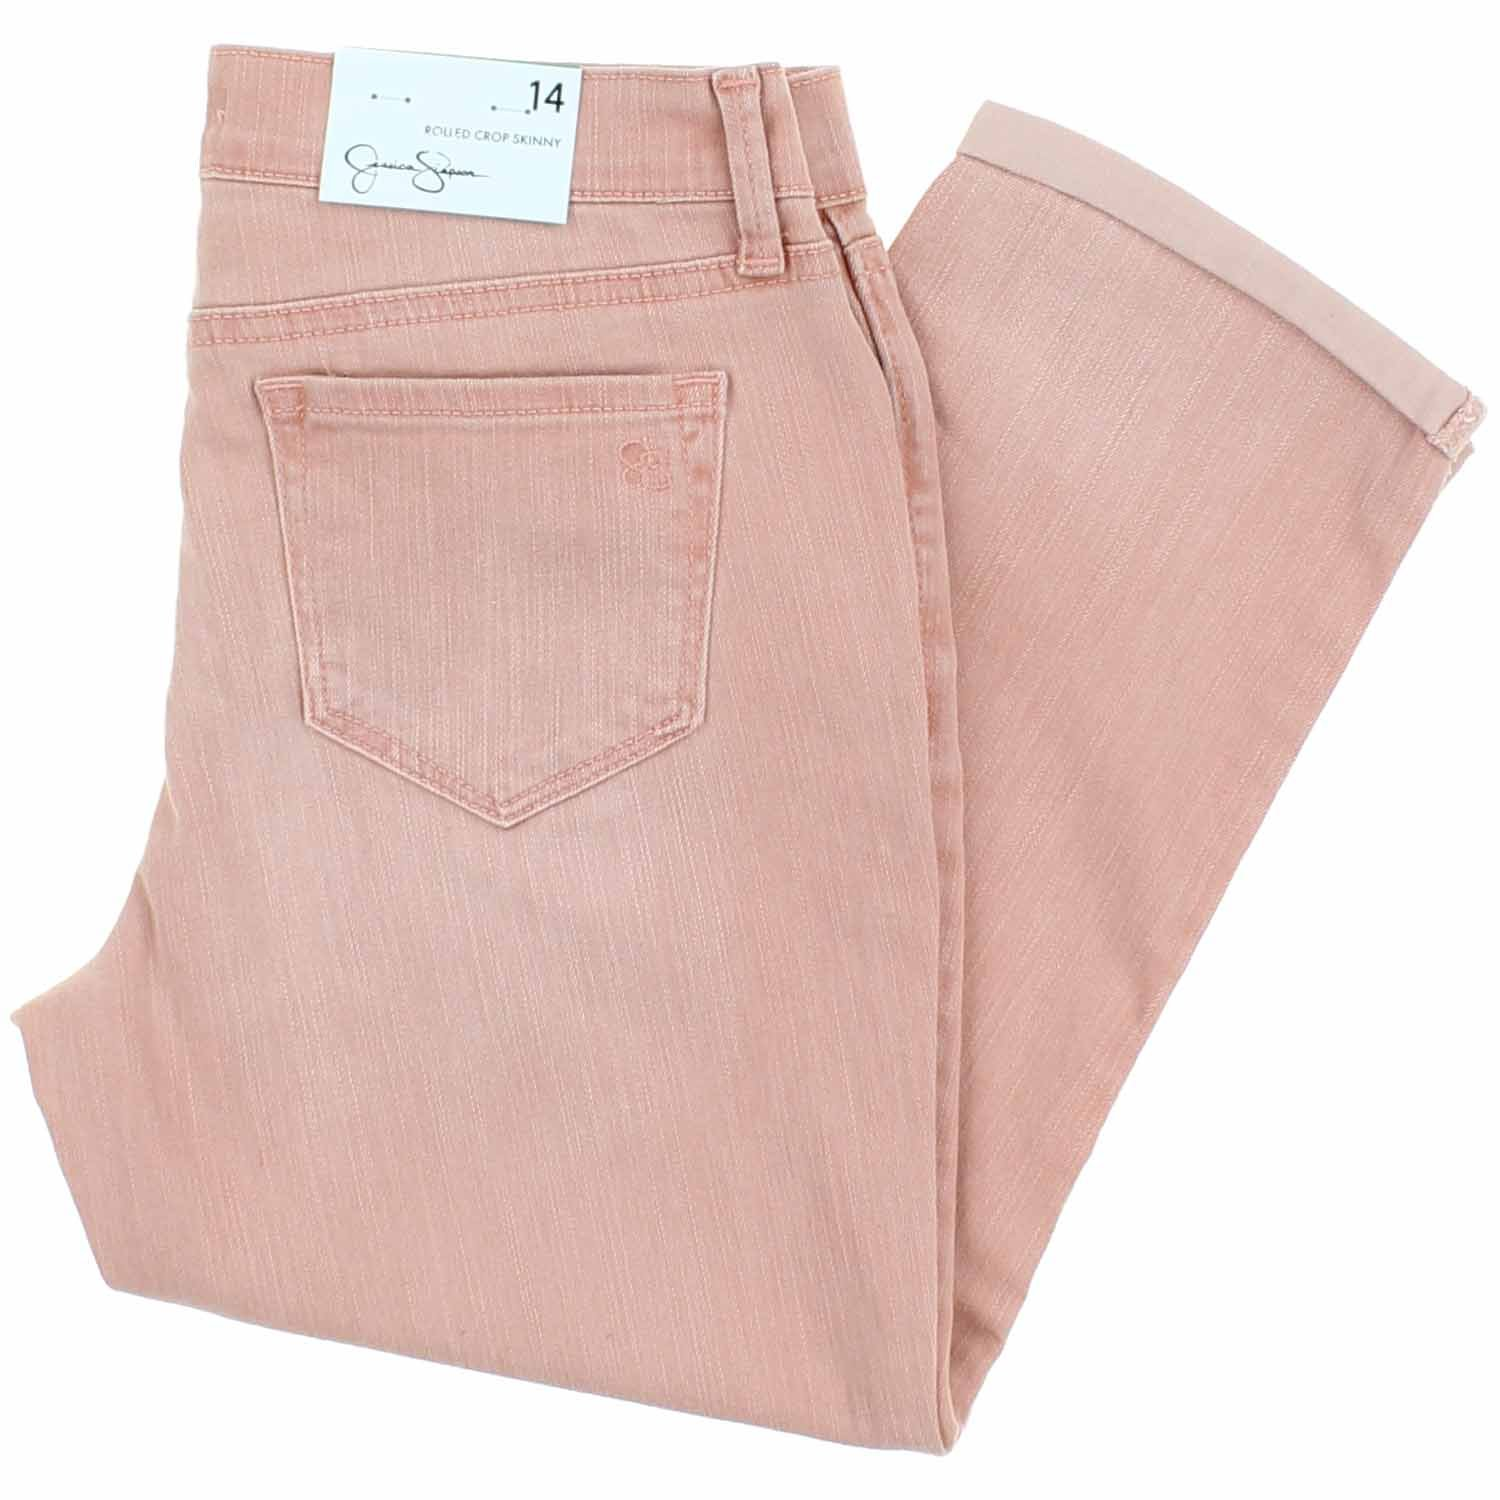 Jessica Simpson Girls Rolled Crop Skinny Jean (14, Canyon Pink/Rocco)